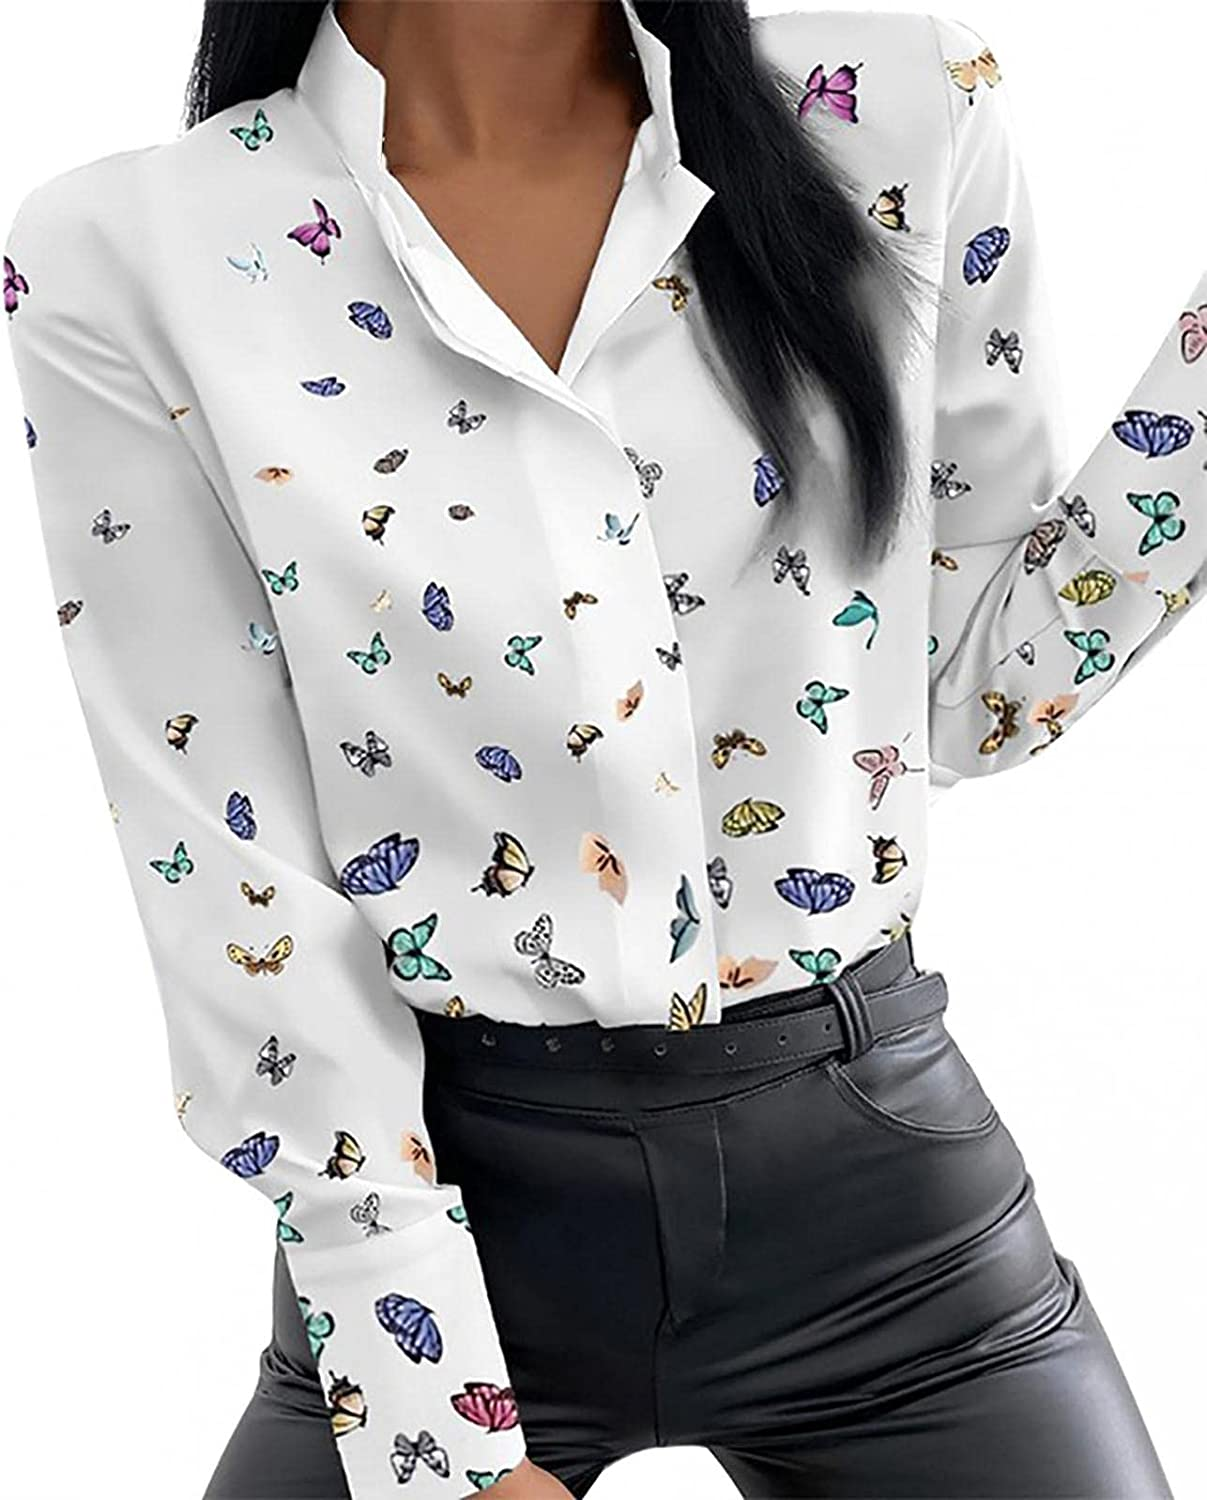 Fashion Shirt for Women Lapel Single Breasted Long Sleeve Blouse Tops Casual Slim Printing Stand-Up Collar Shirt Tops